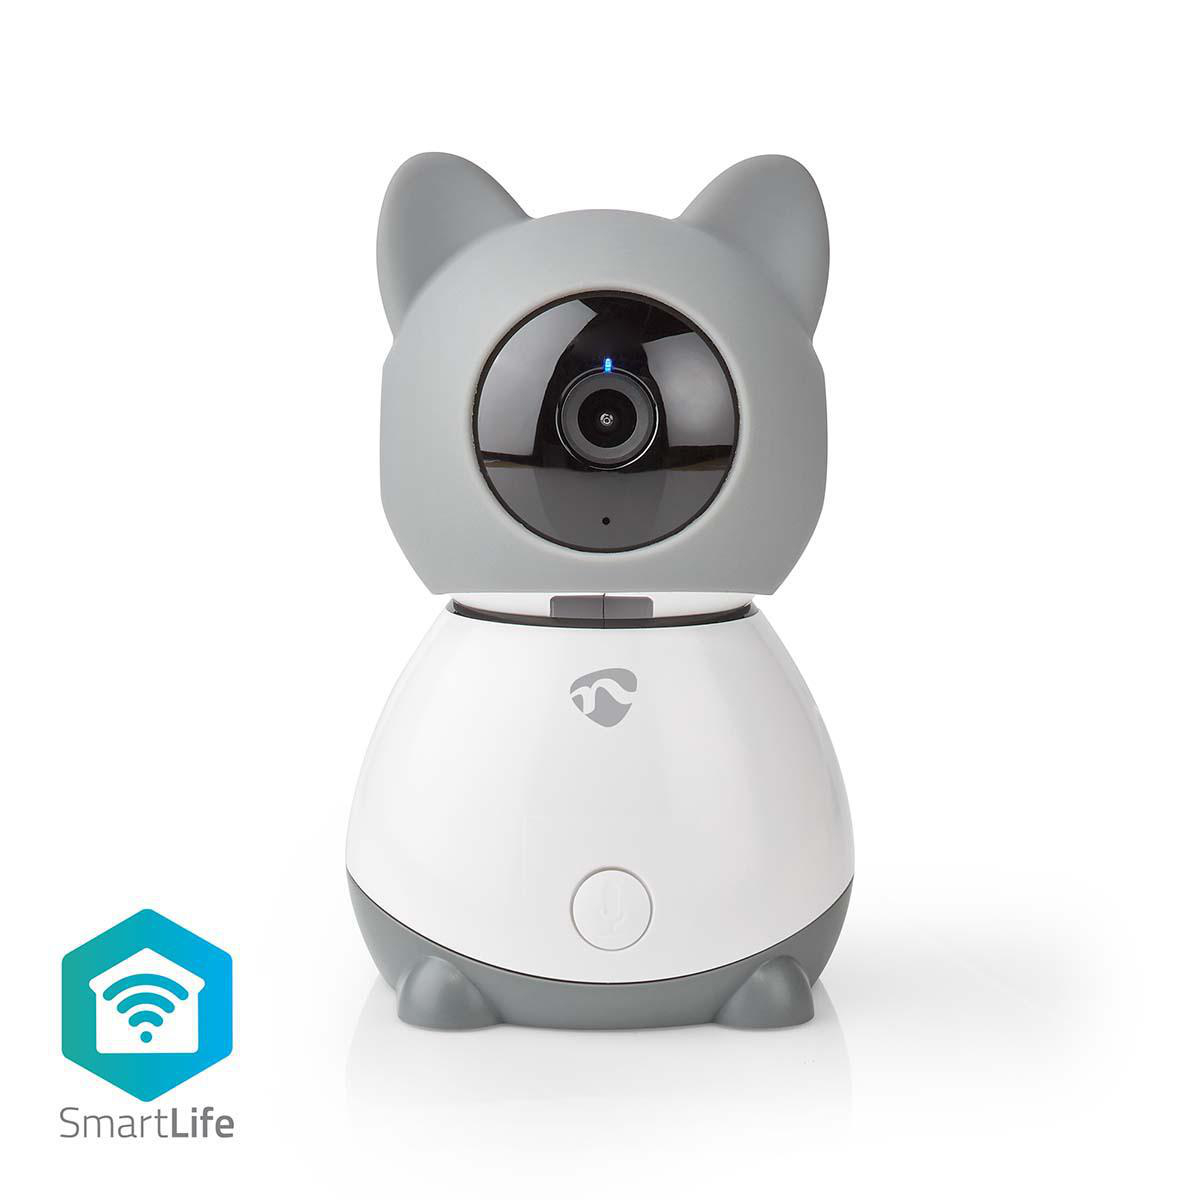 How to install... the SmartLife 'CatLike' Indoor Camera